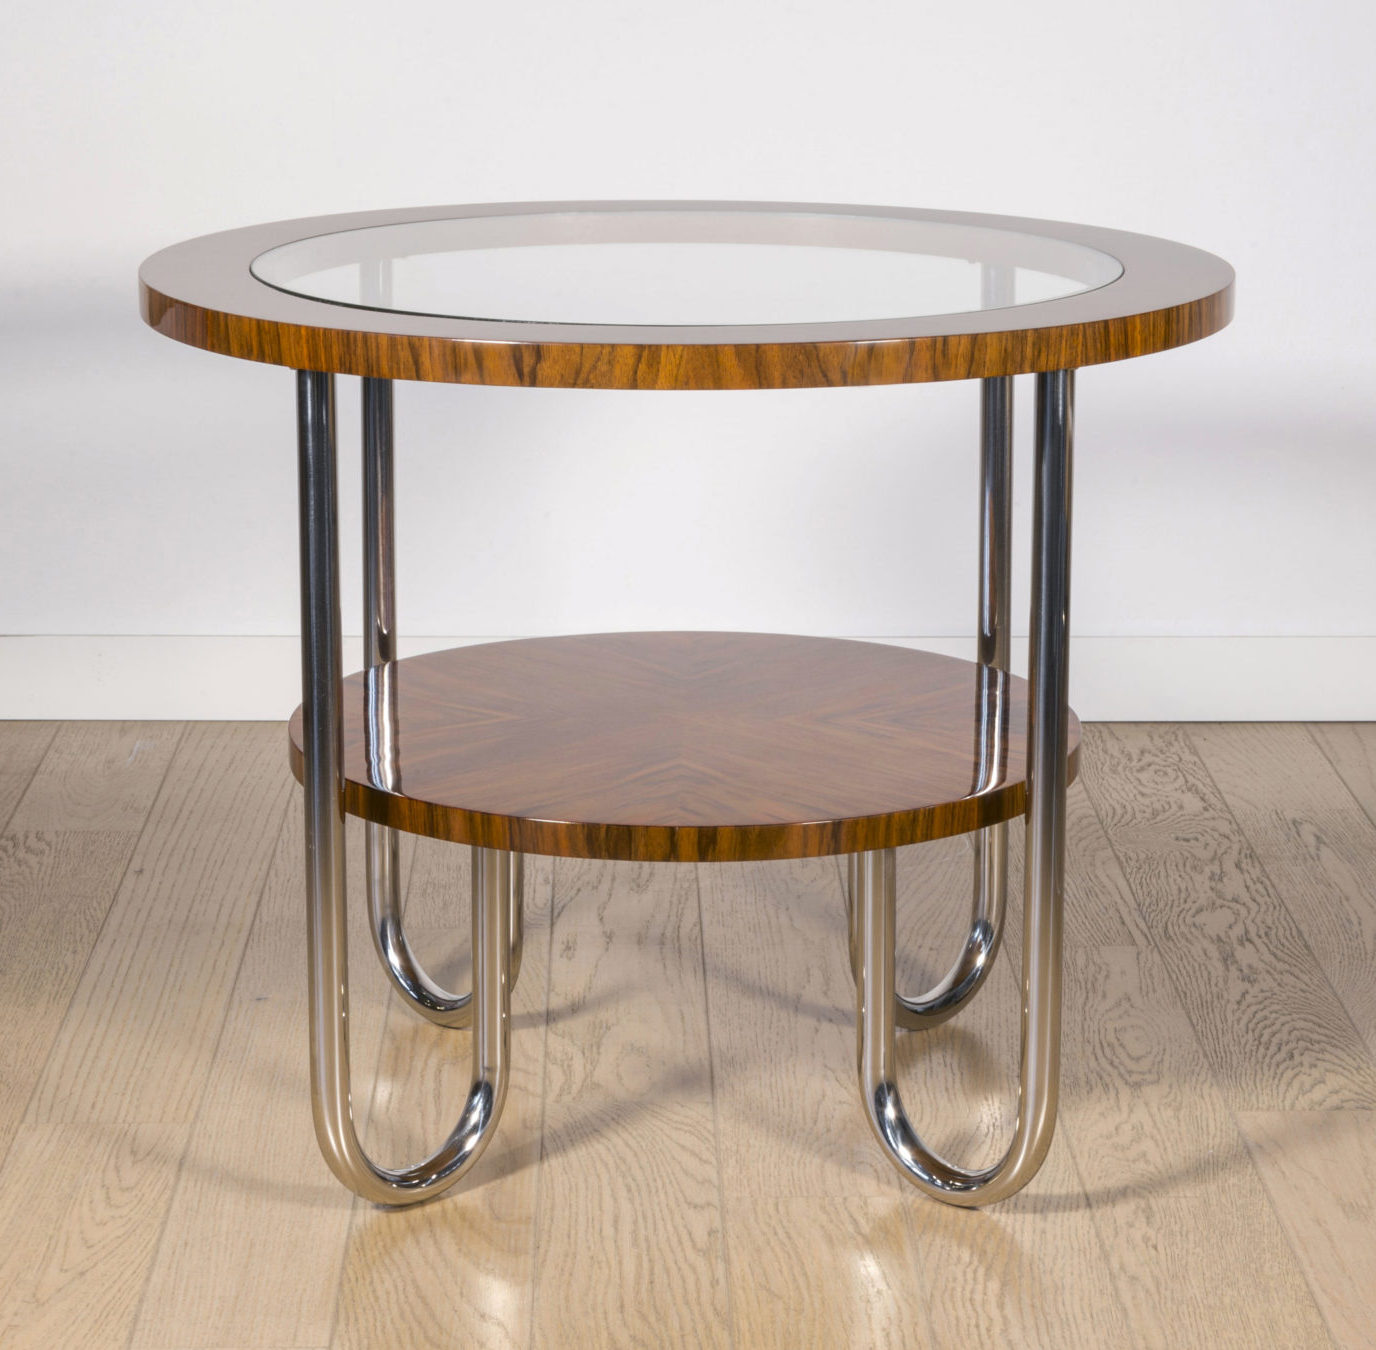 Bauhaus table